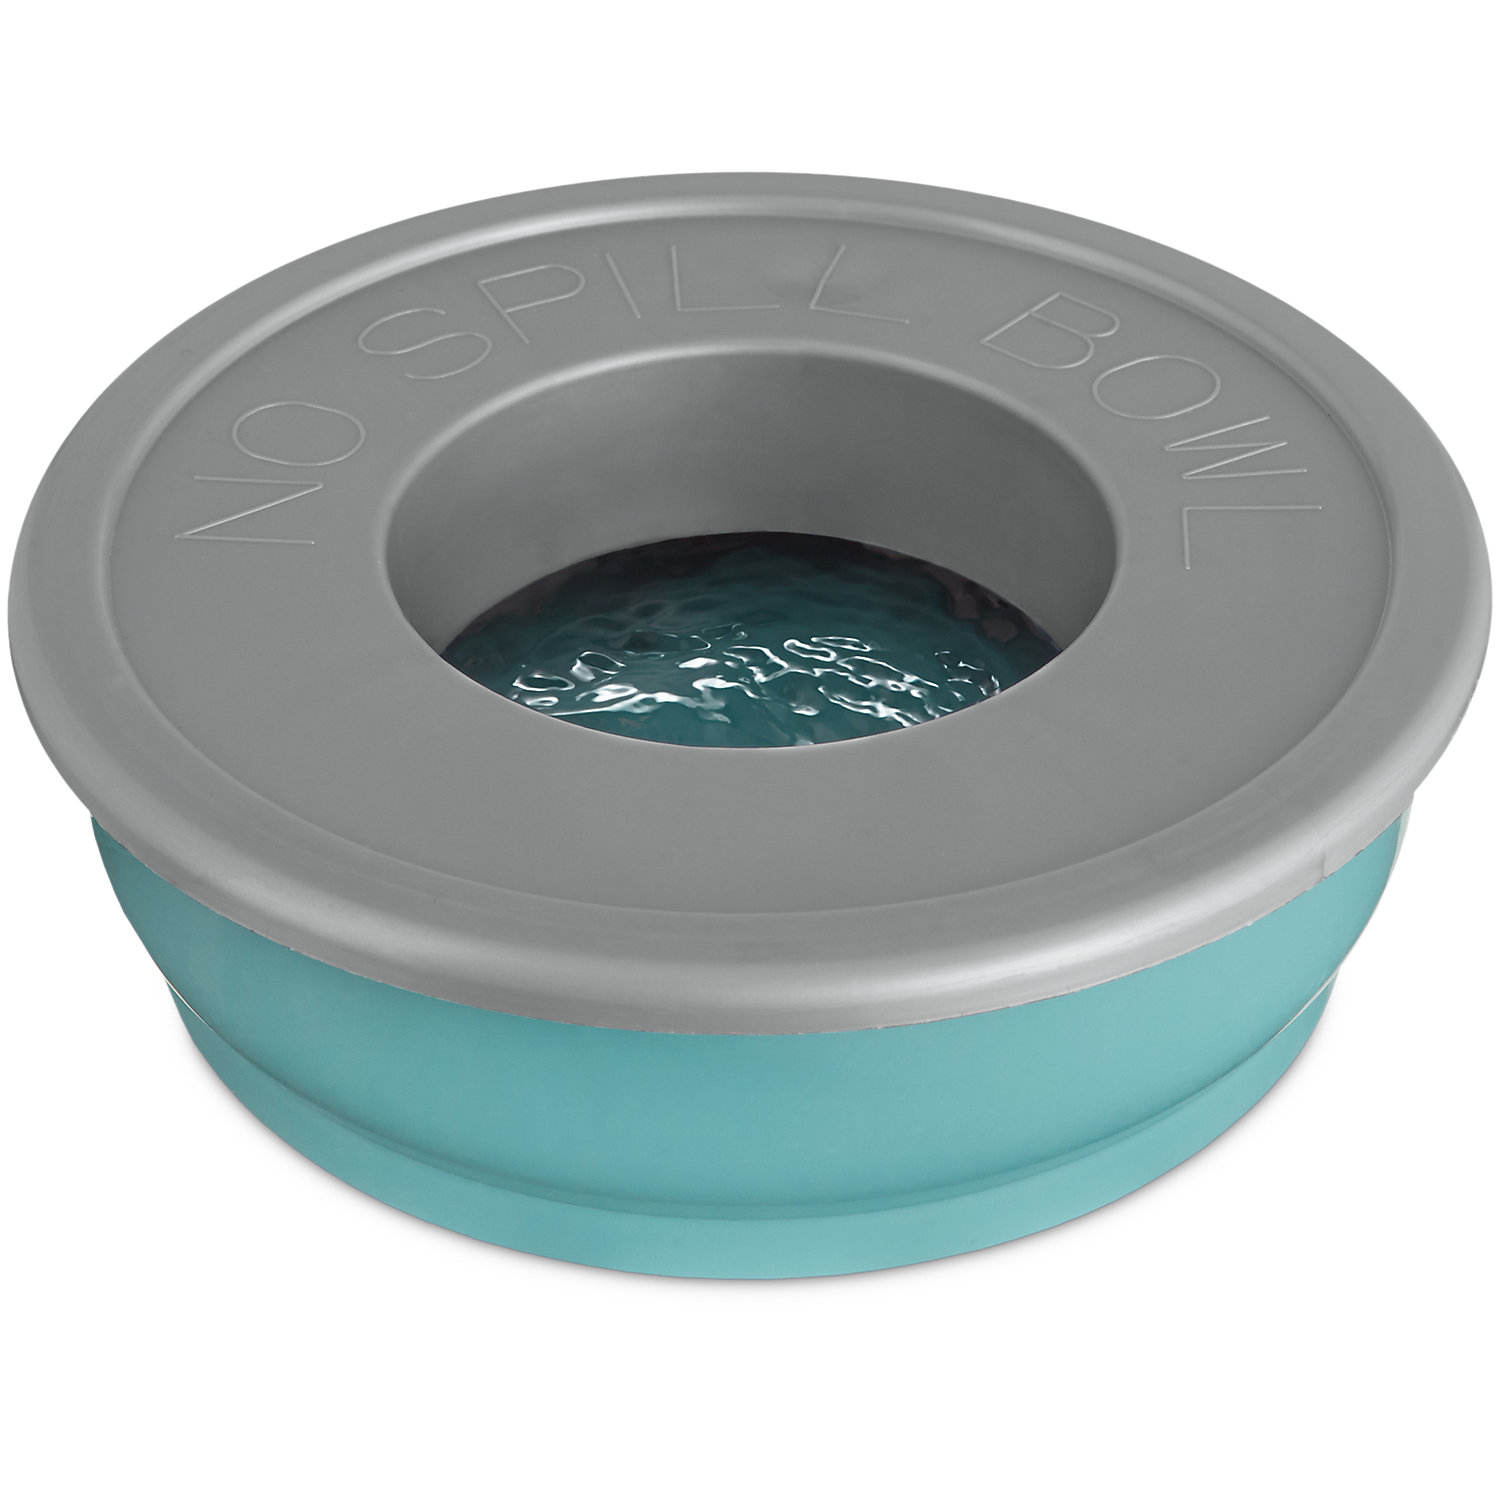 Good2go Blue No-spill Dog Bowl, One Size Fits All